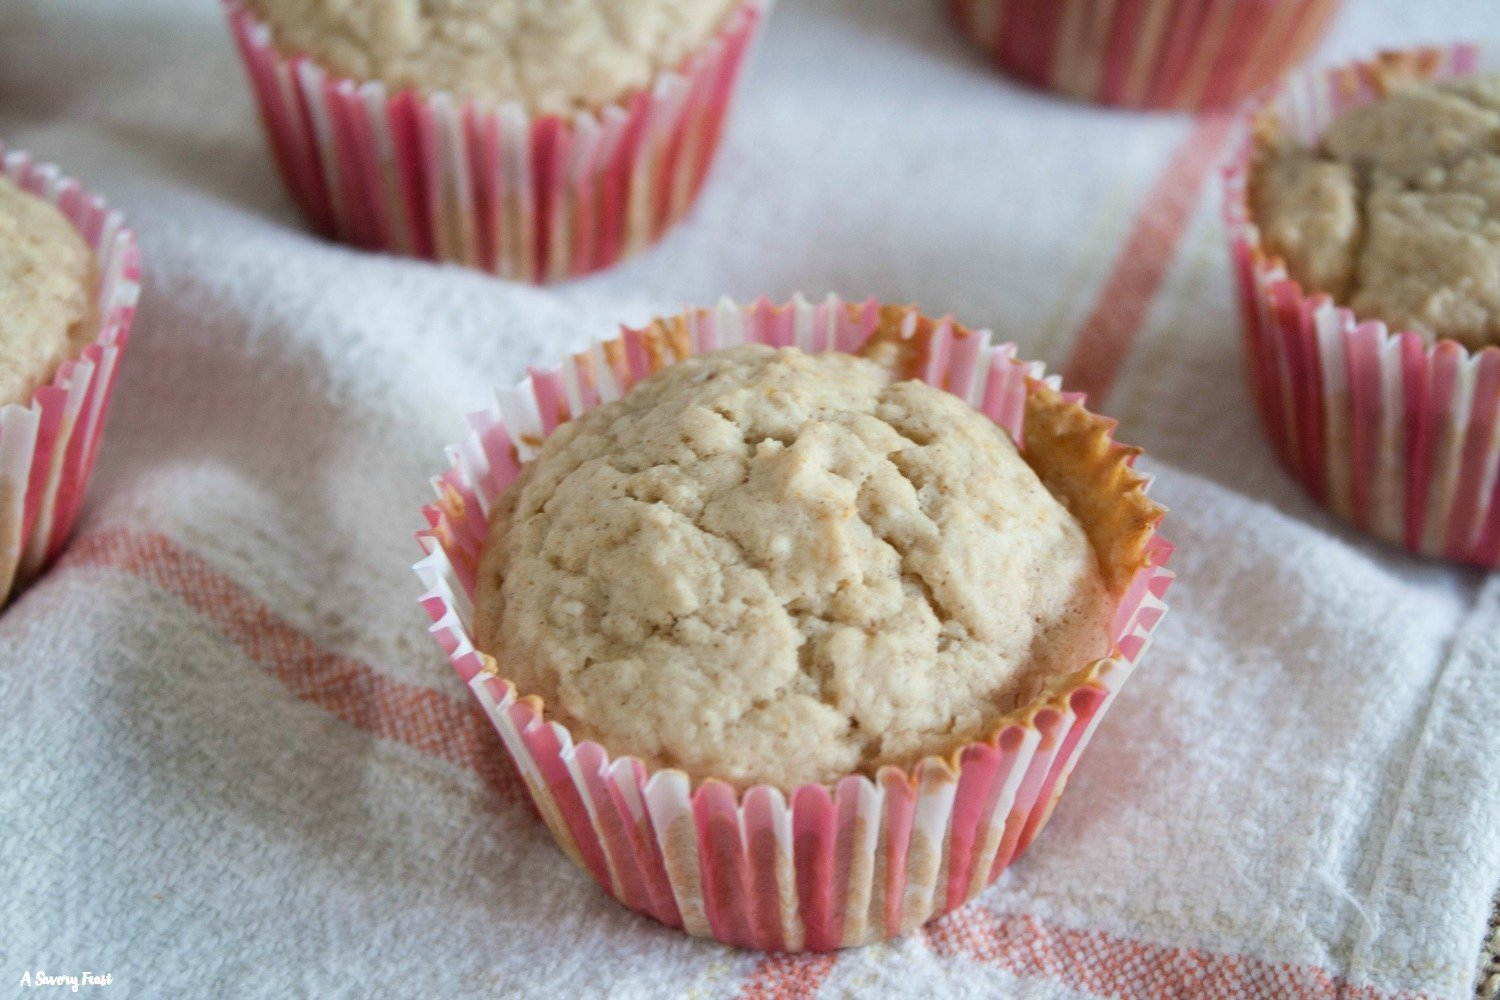 Start your day off right with these delicious One Bowl Applesauce Muffins.